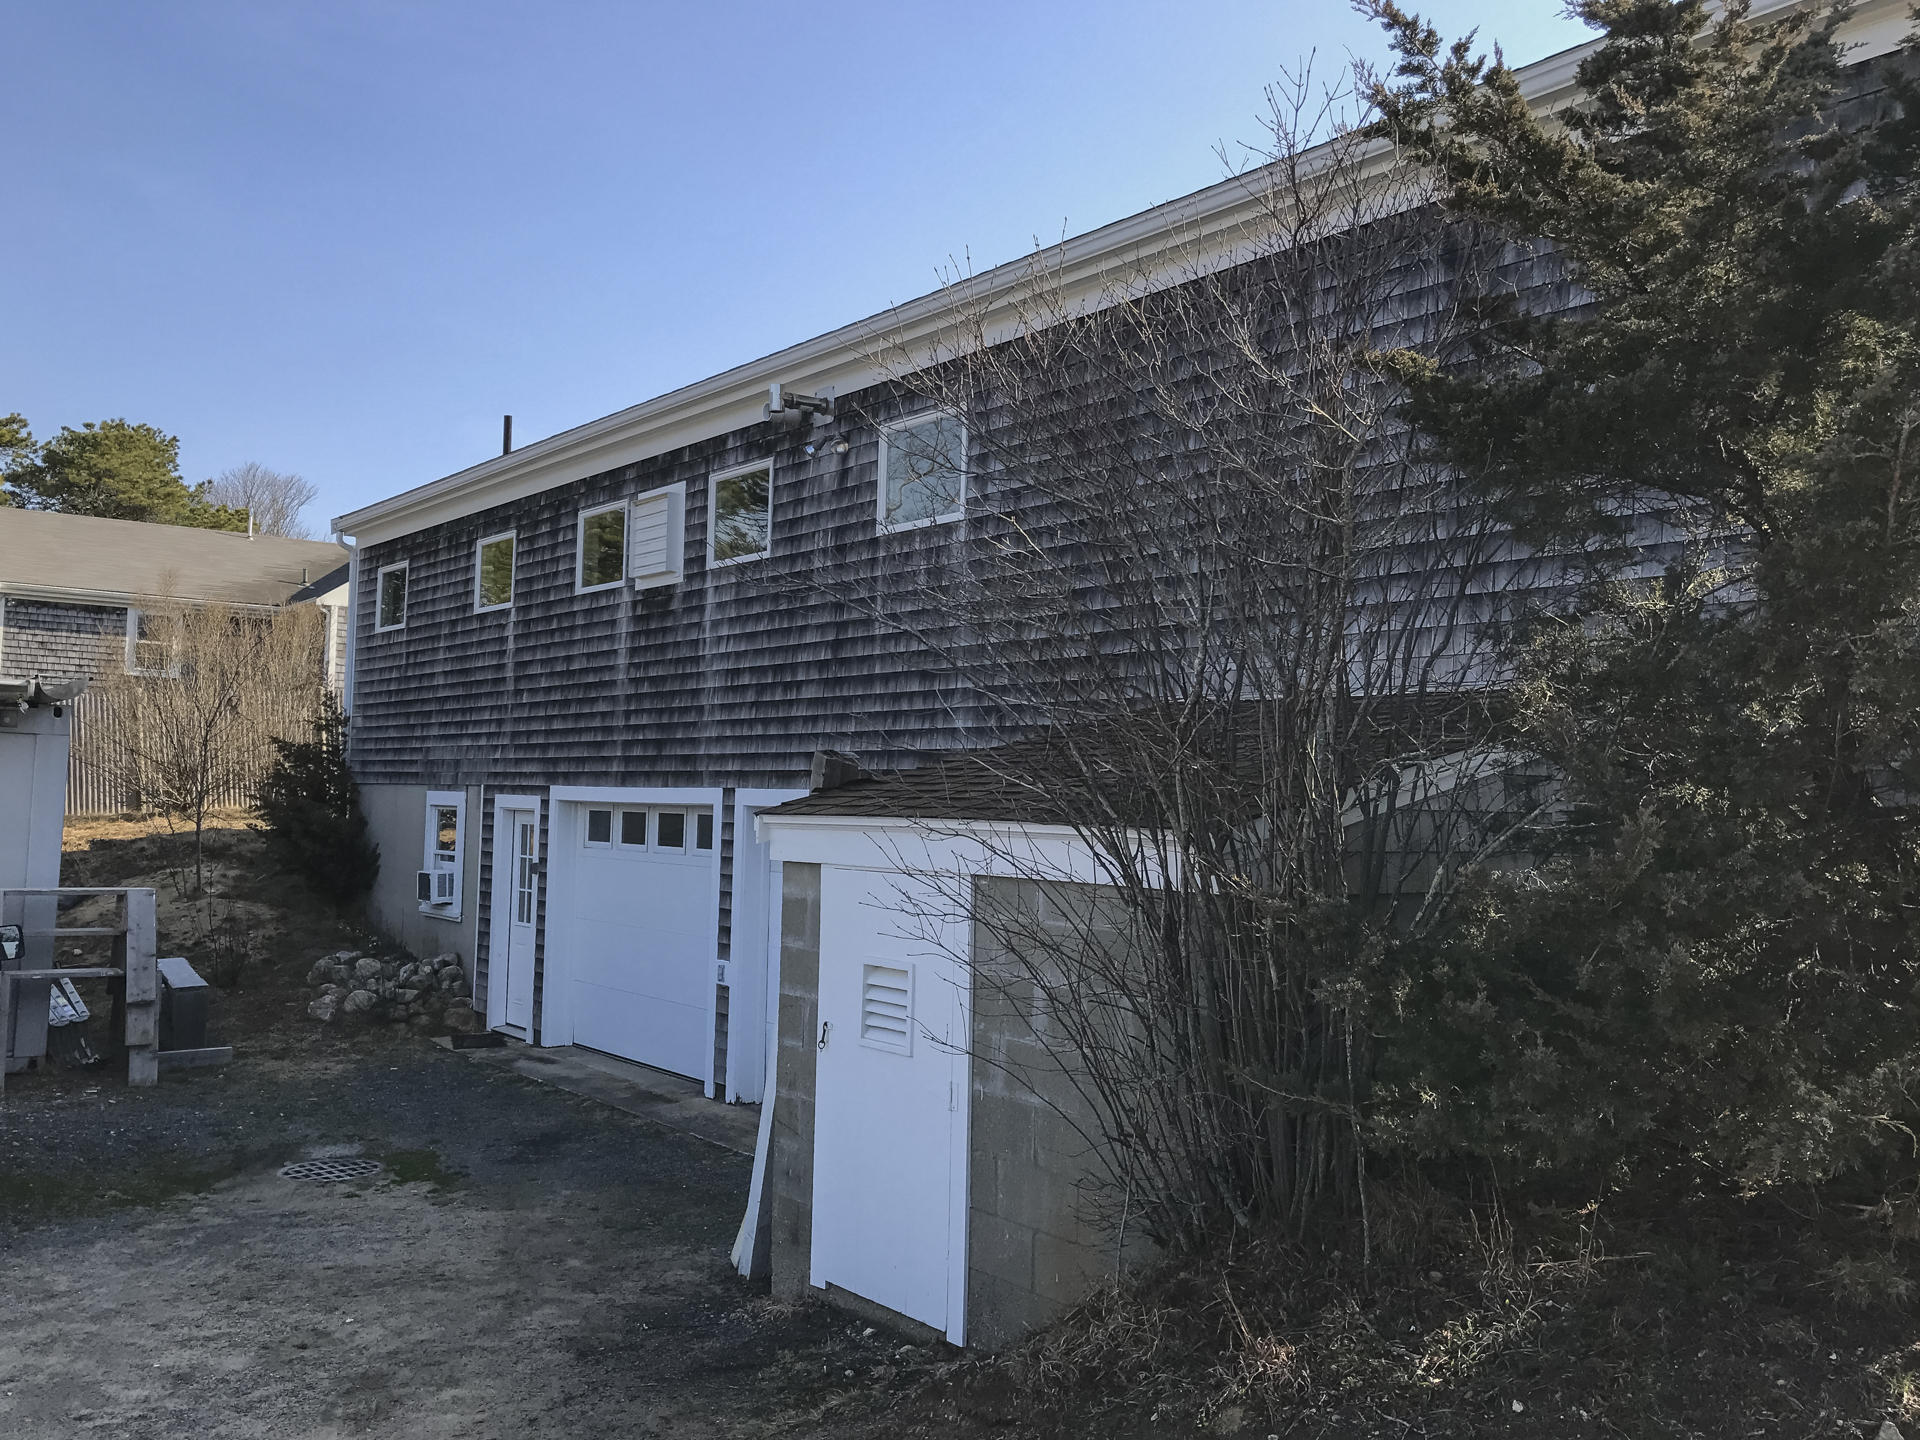 39 George Ryder Road, Chatham MA, 02633 - slide 3